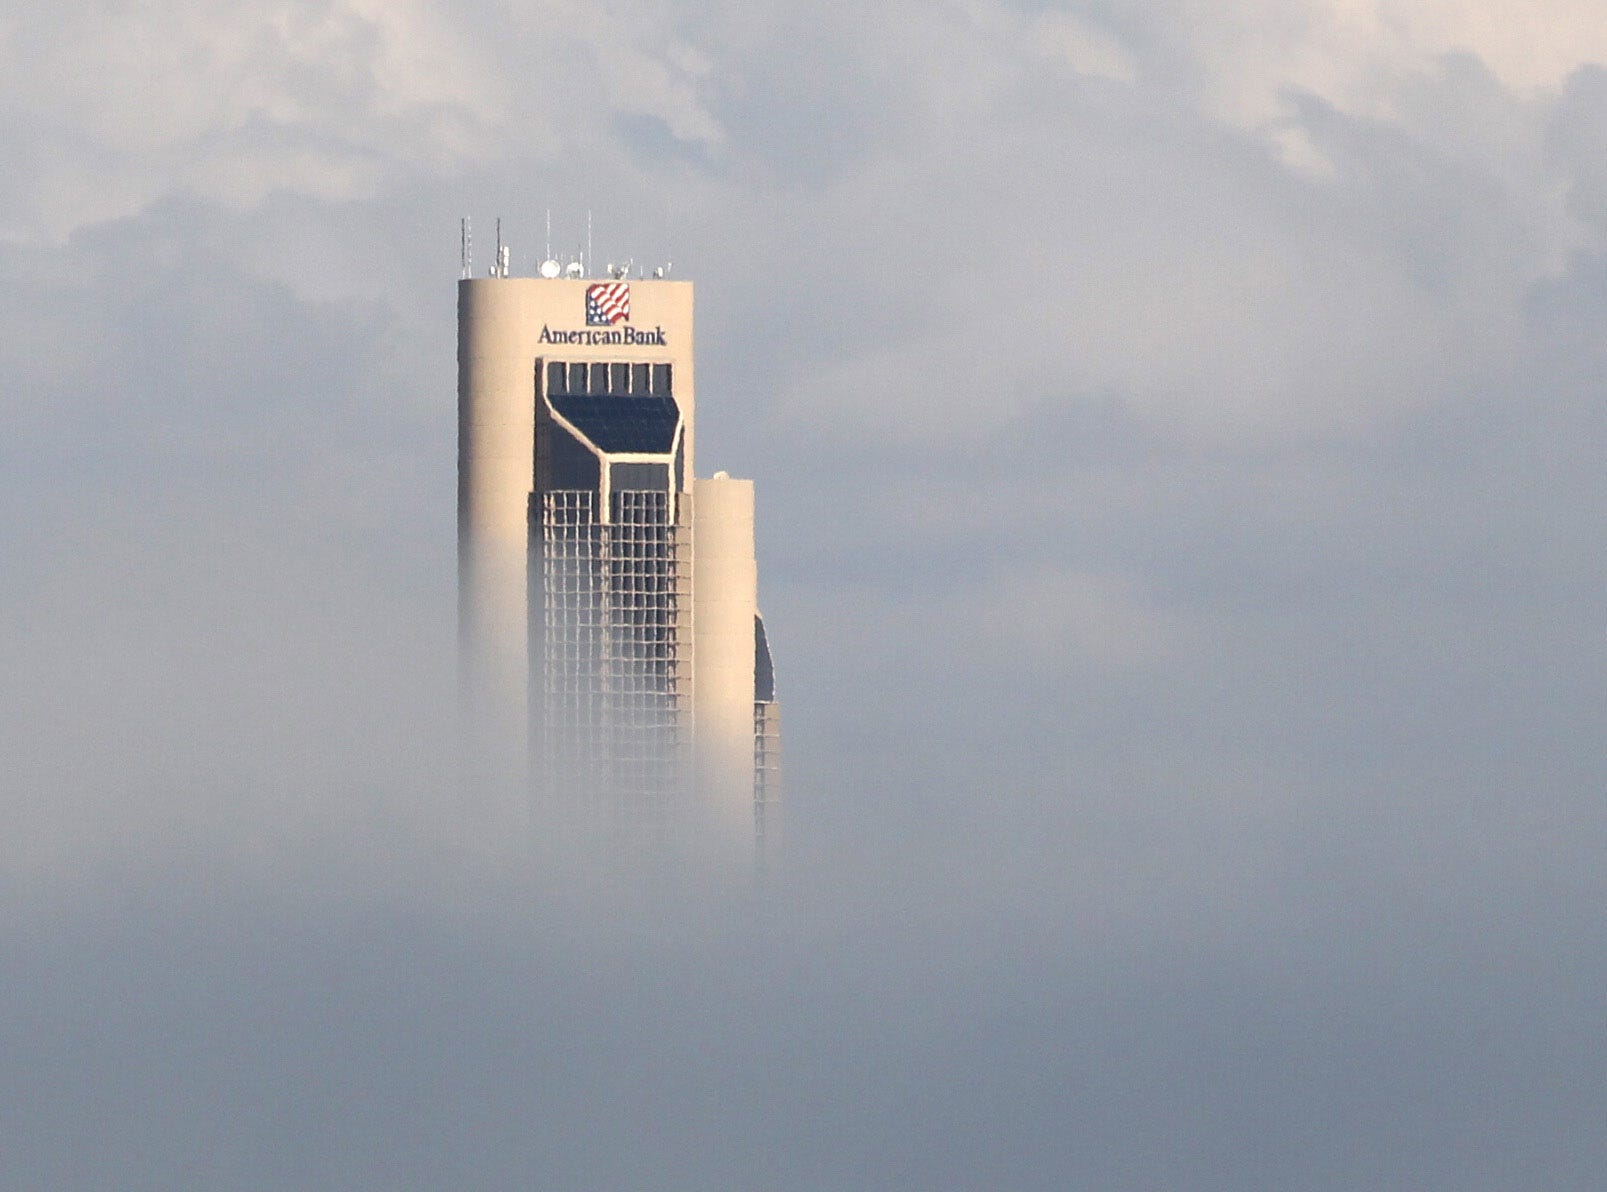 One Shoreline Plaza Tower peeks out from the fog that blanketed the area Oct. 31, 2012.